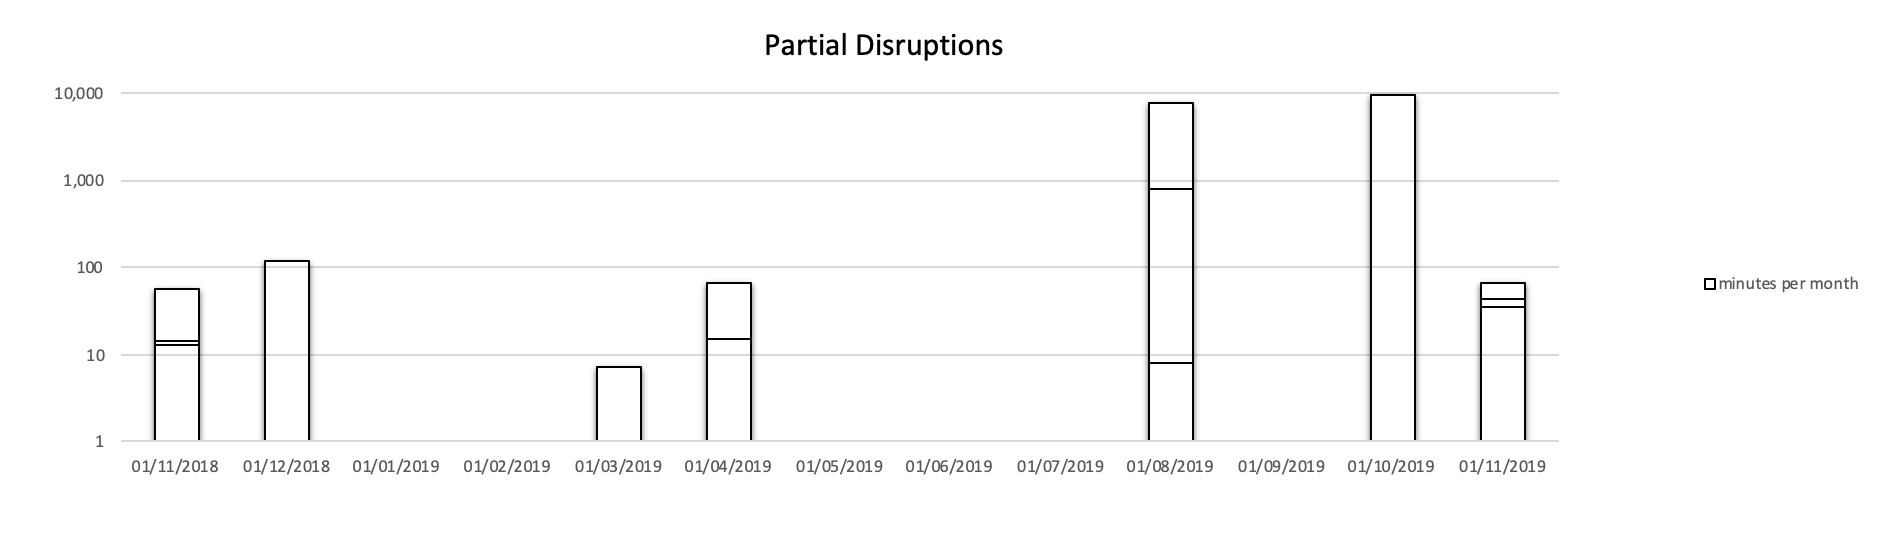 Partial Disruptions of Let's Encrypt in 2019. Multiple incidents per month are stacked.